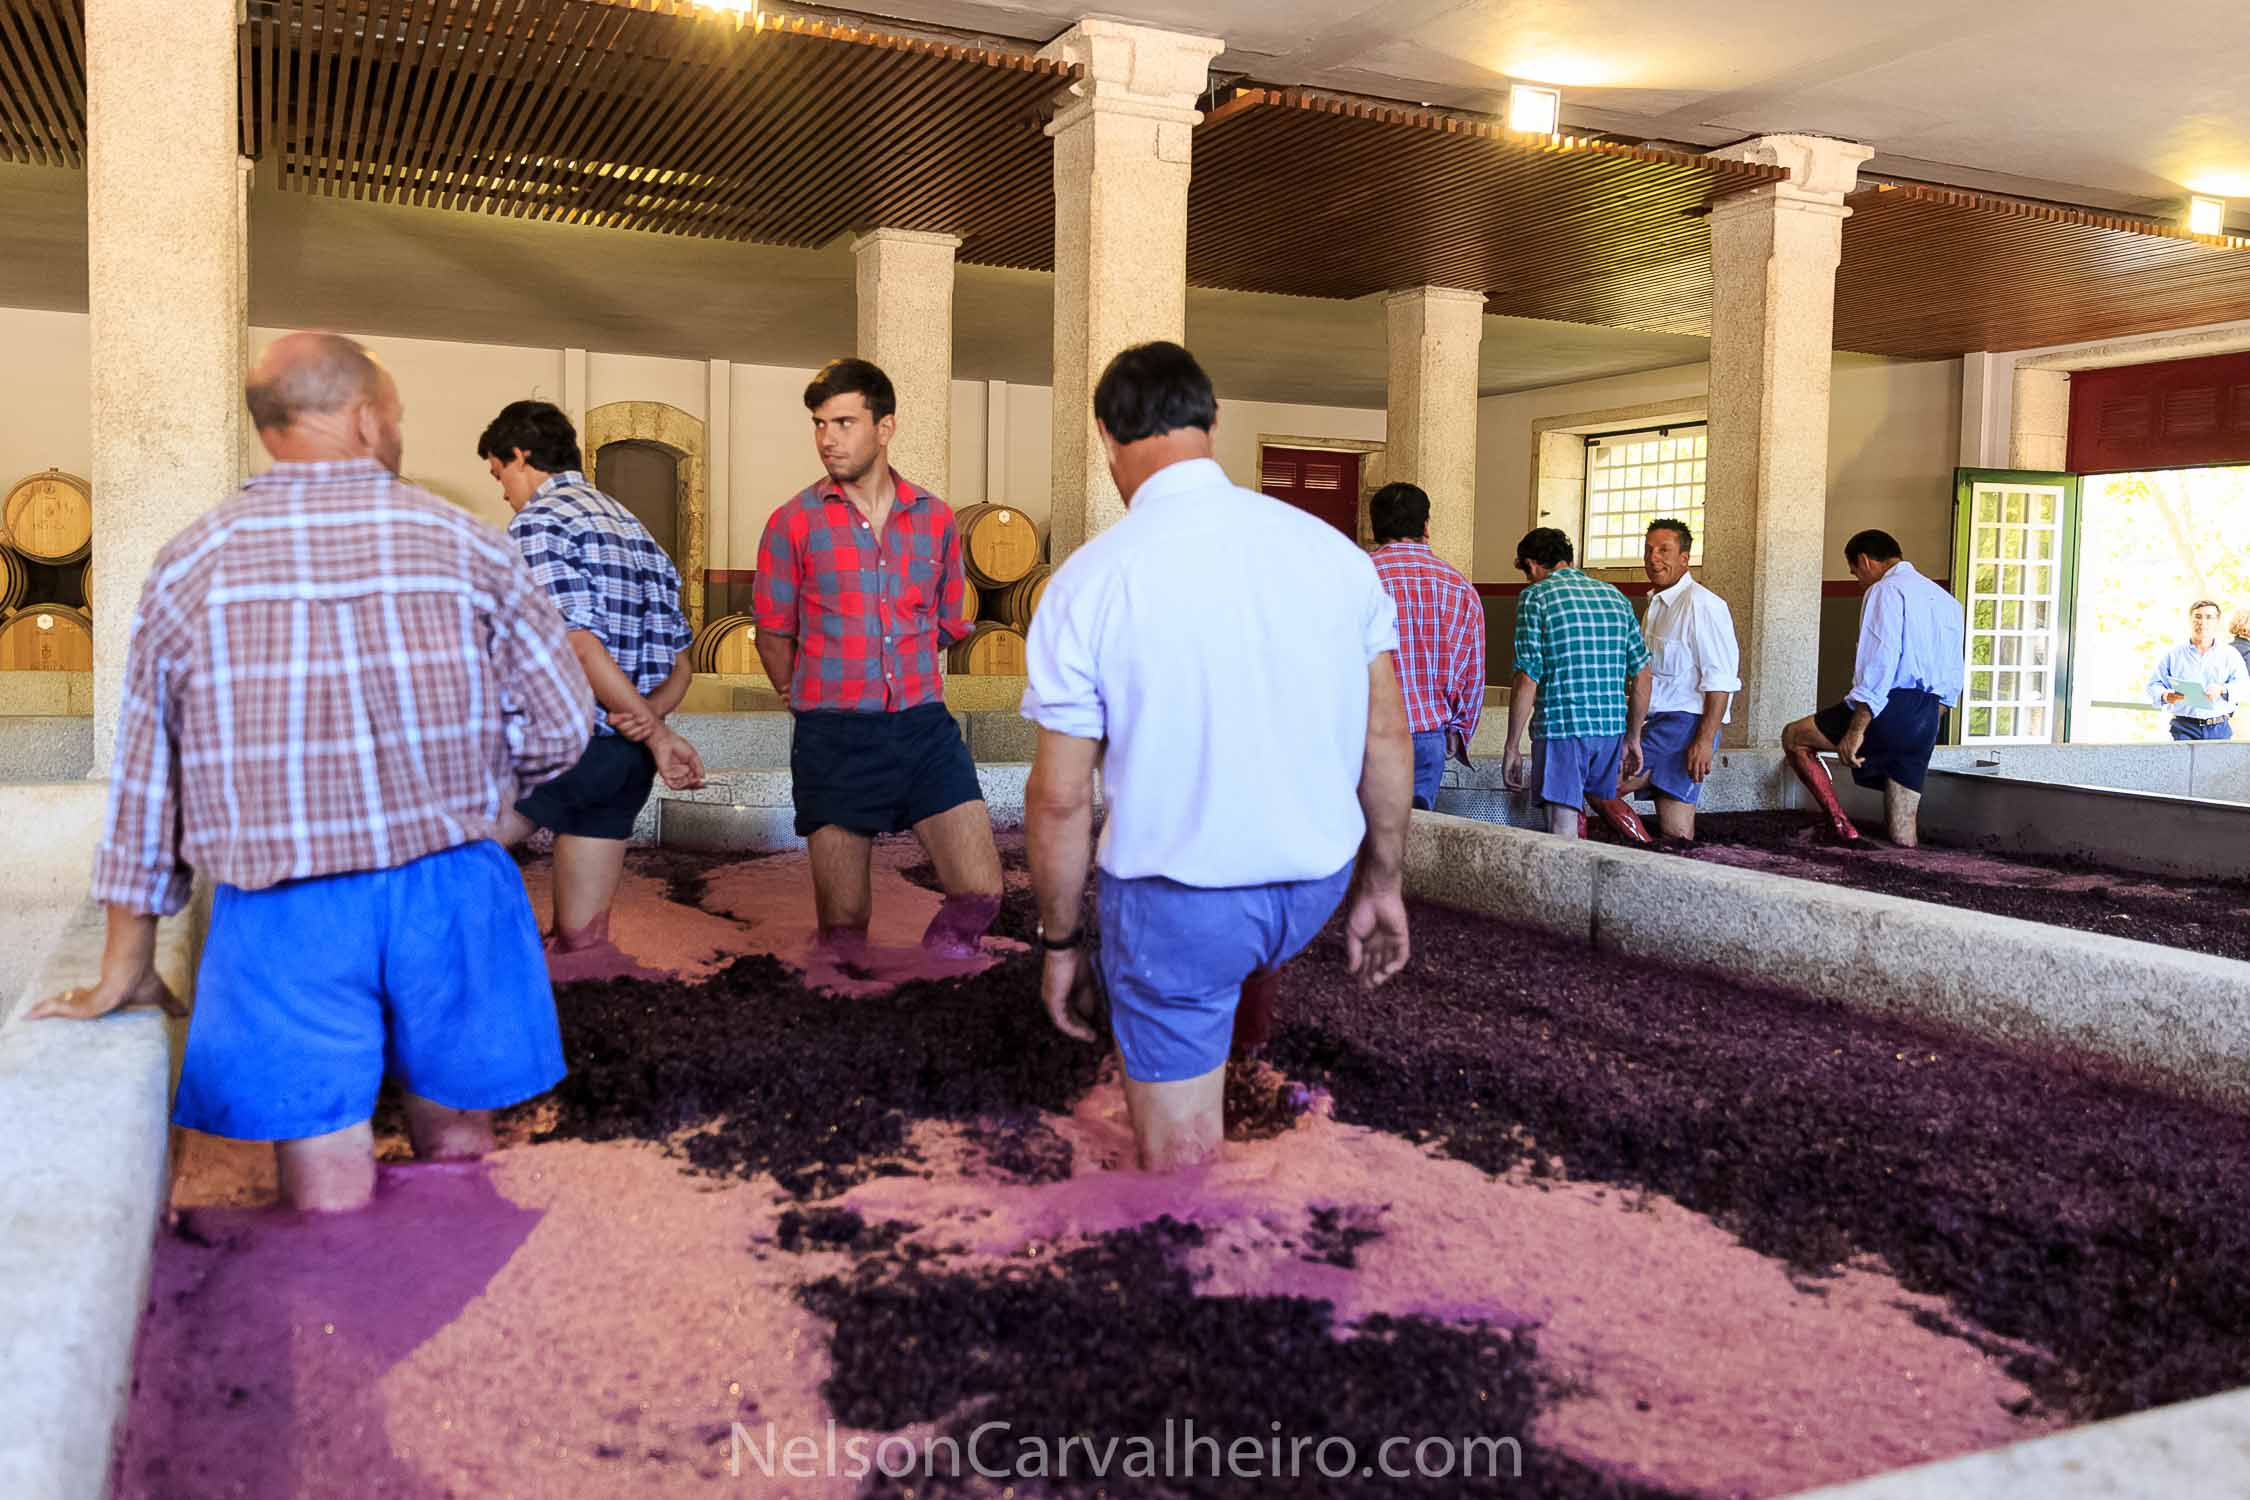 Pacheca Wine Making